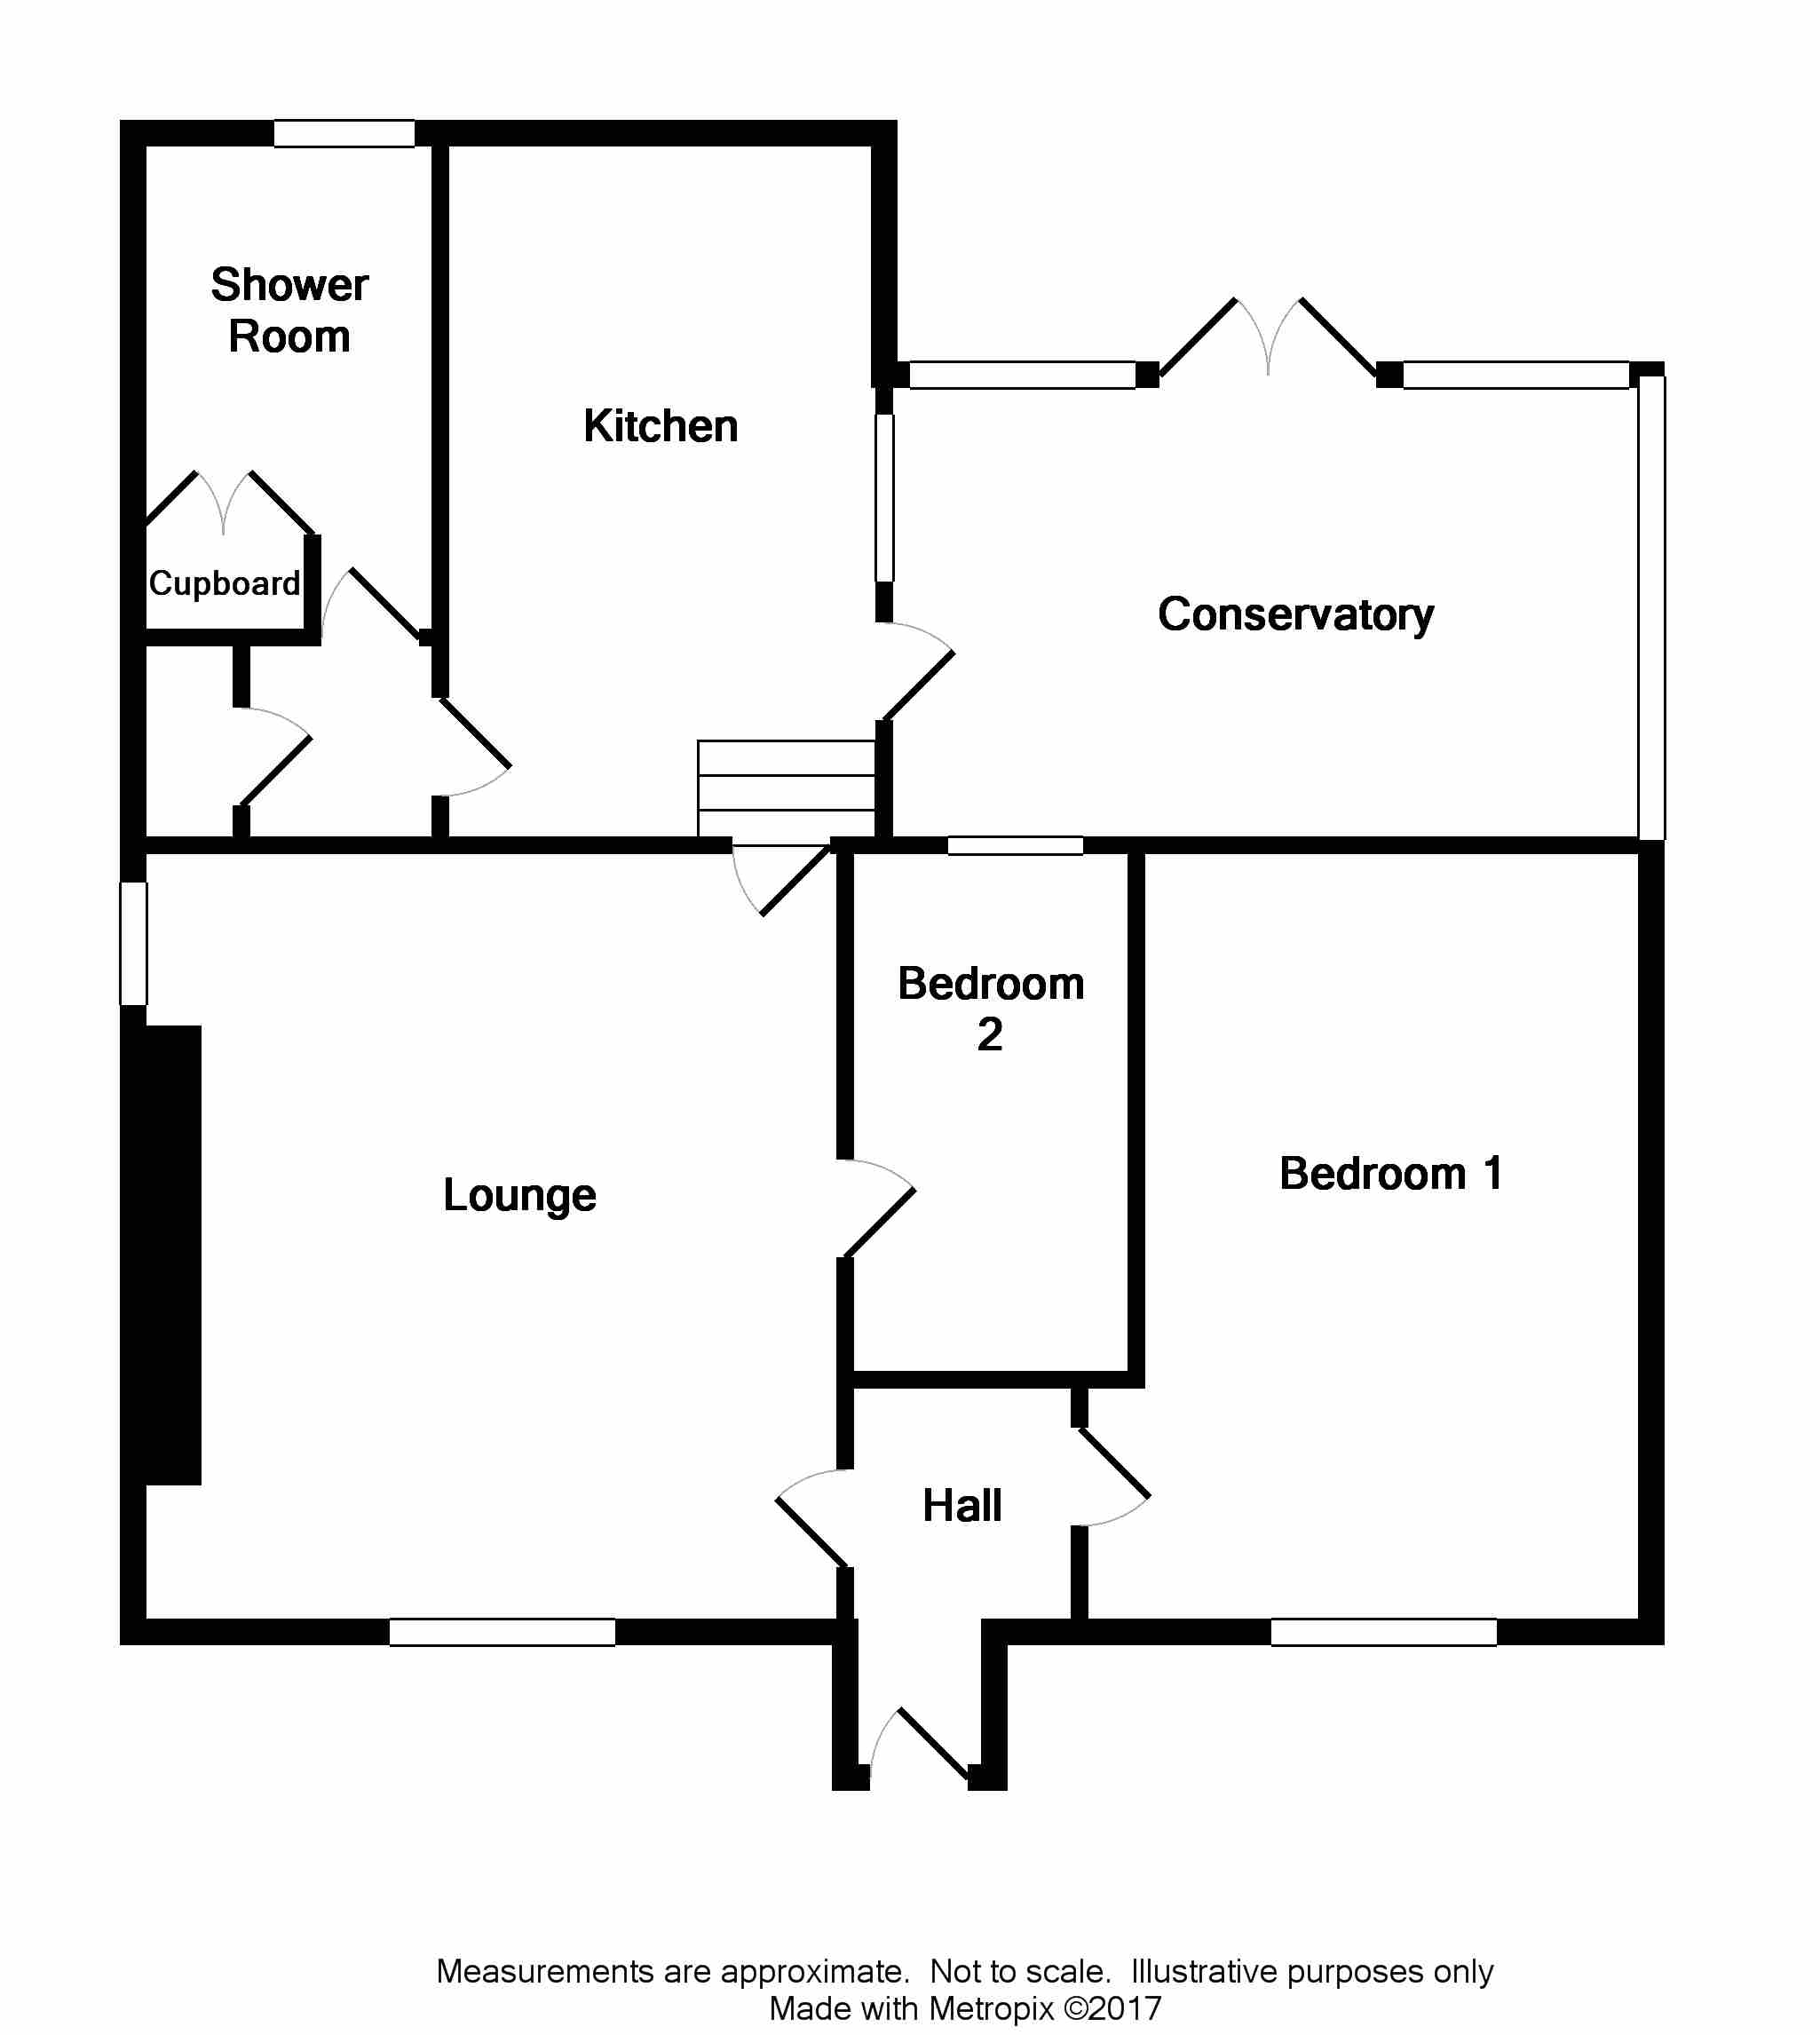 Floor Plan for 'Hillhead of Craichmore Cottage'